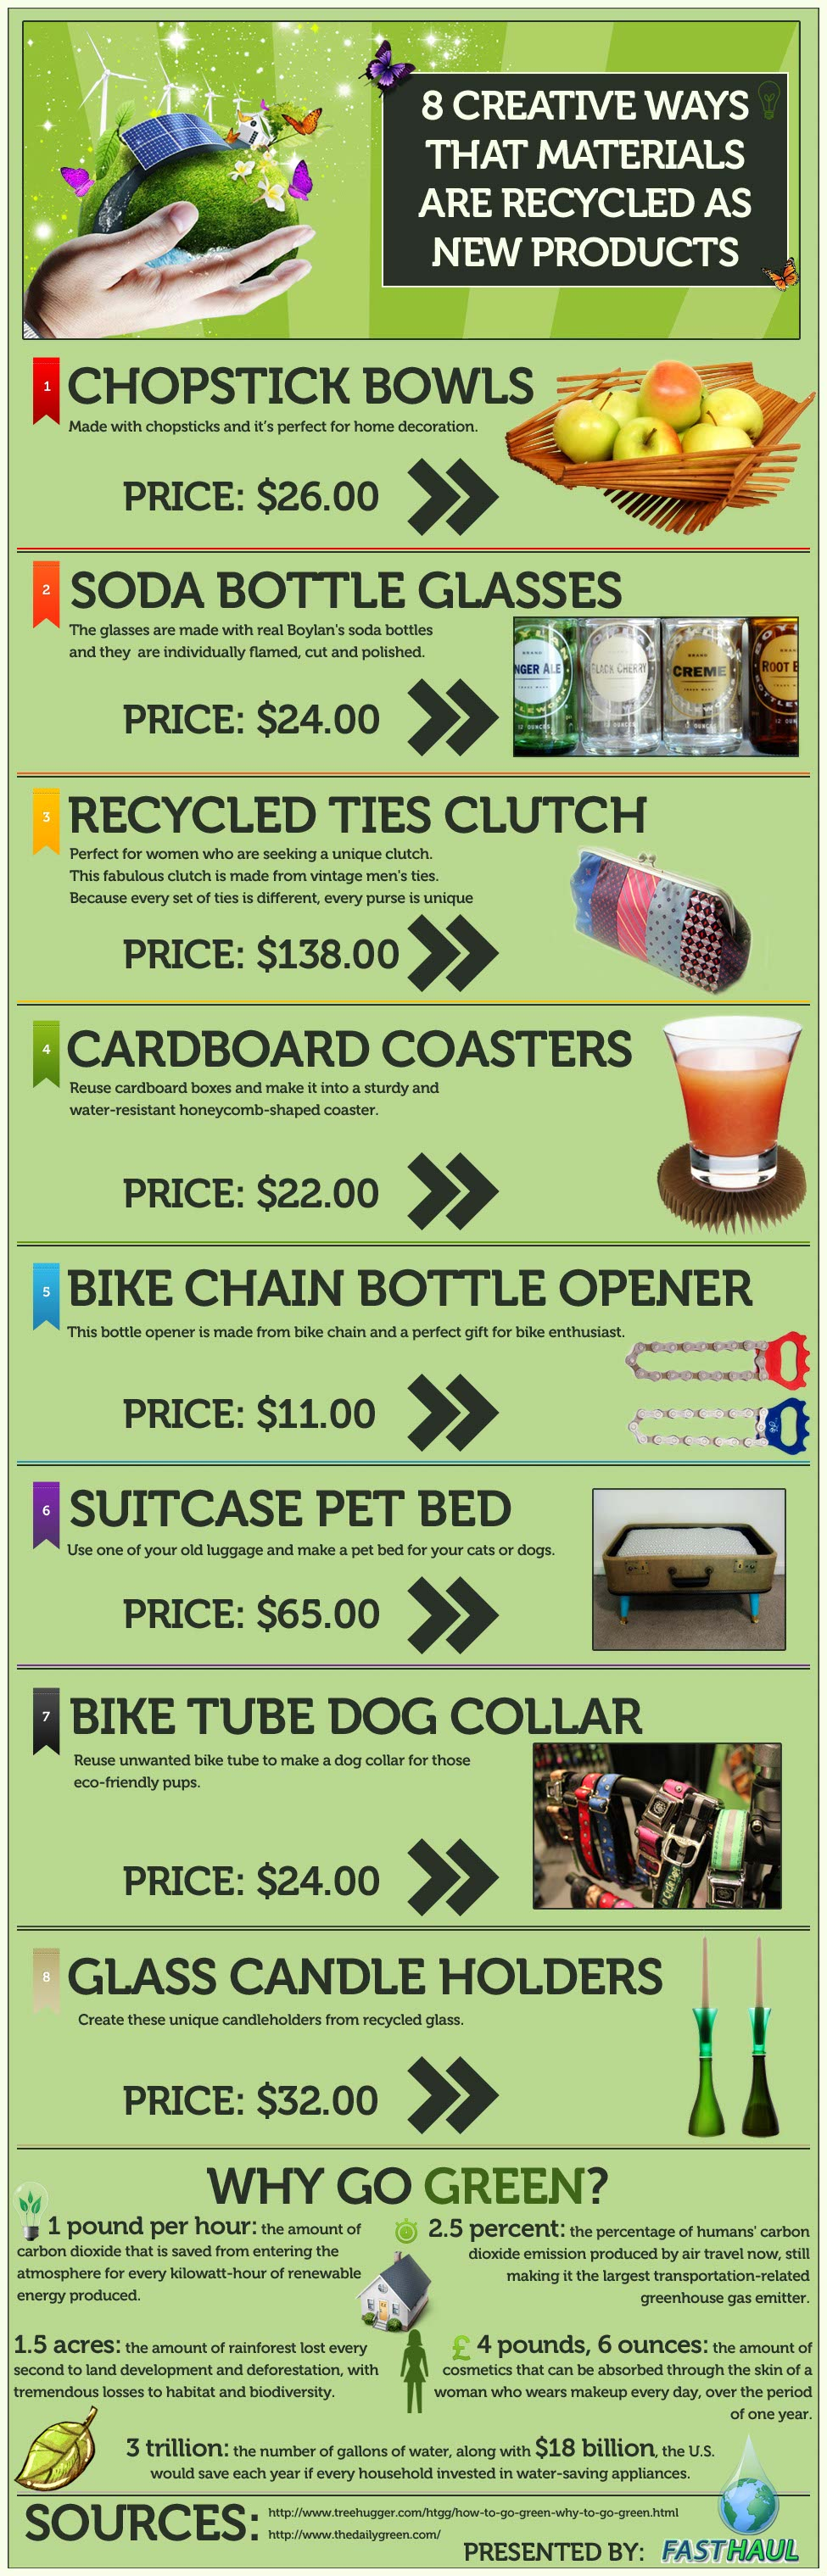 Creative ways Materials are Upcycled [Infographic]   ecogreenlove